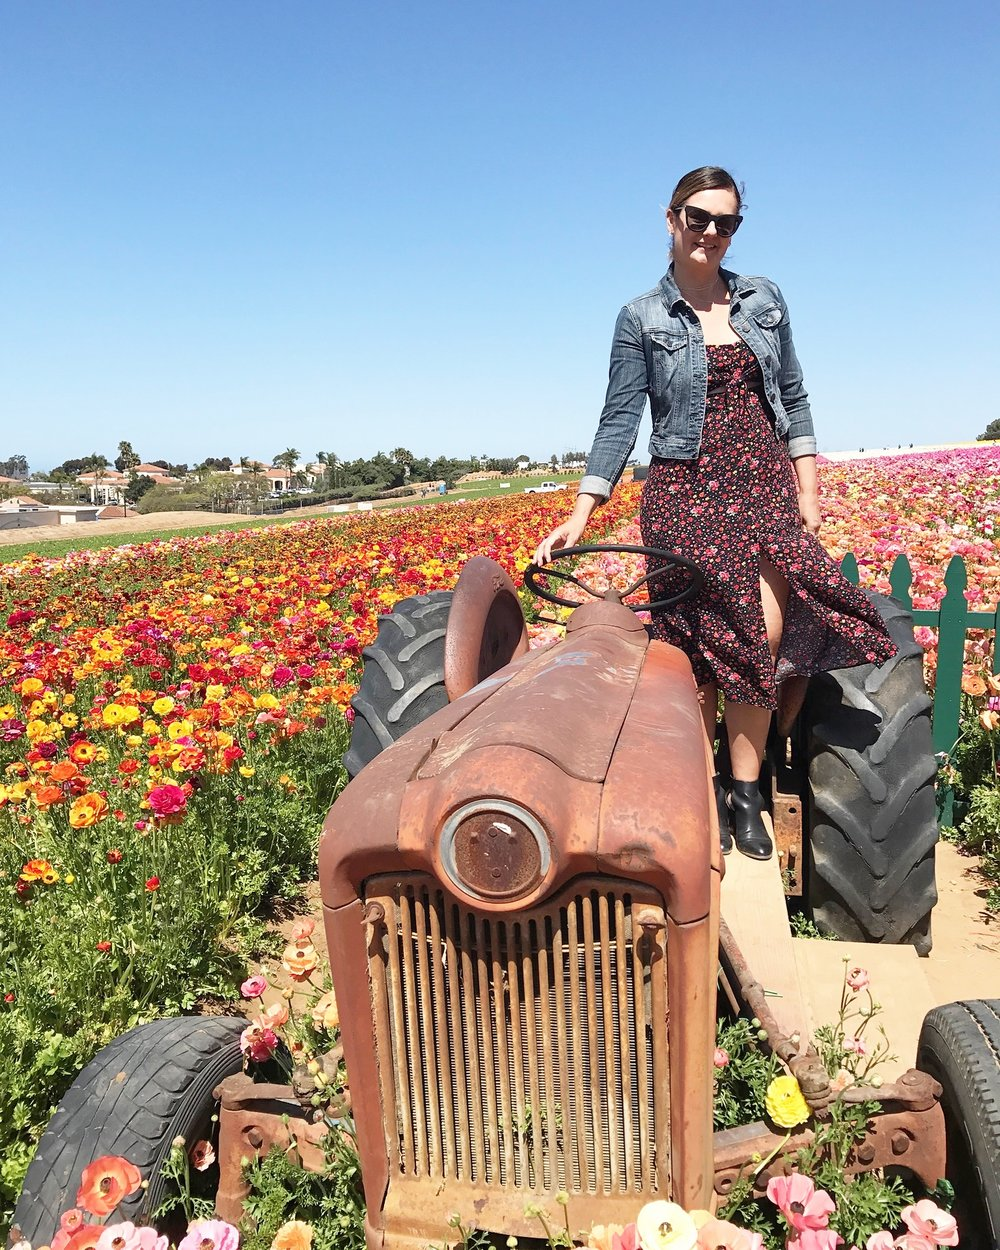 Perfect instgram moment at Carlsbad Flower Fields in California